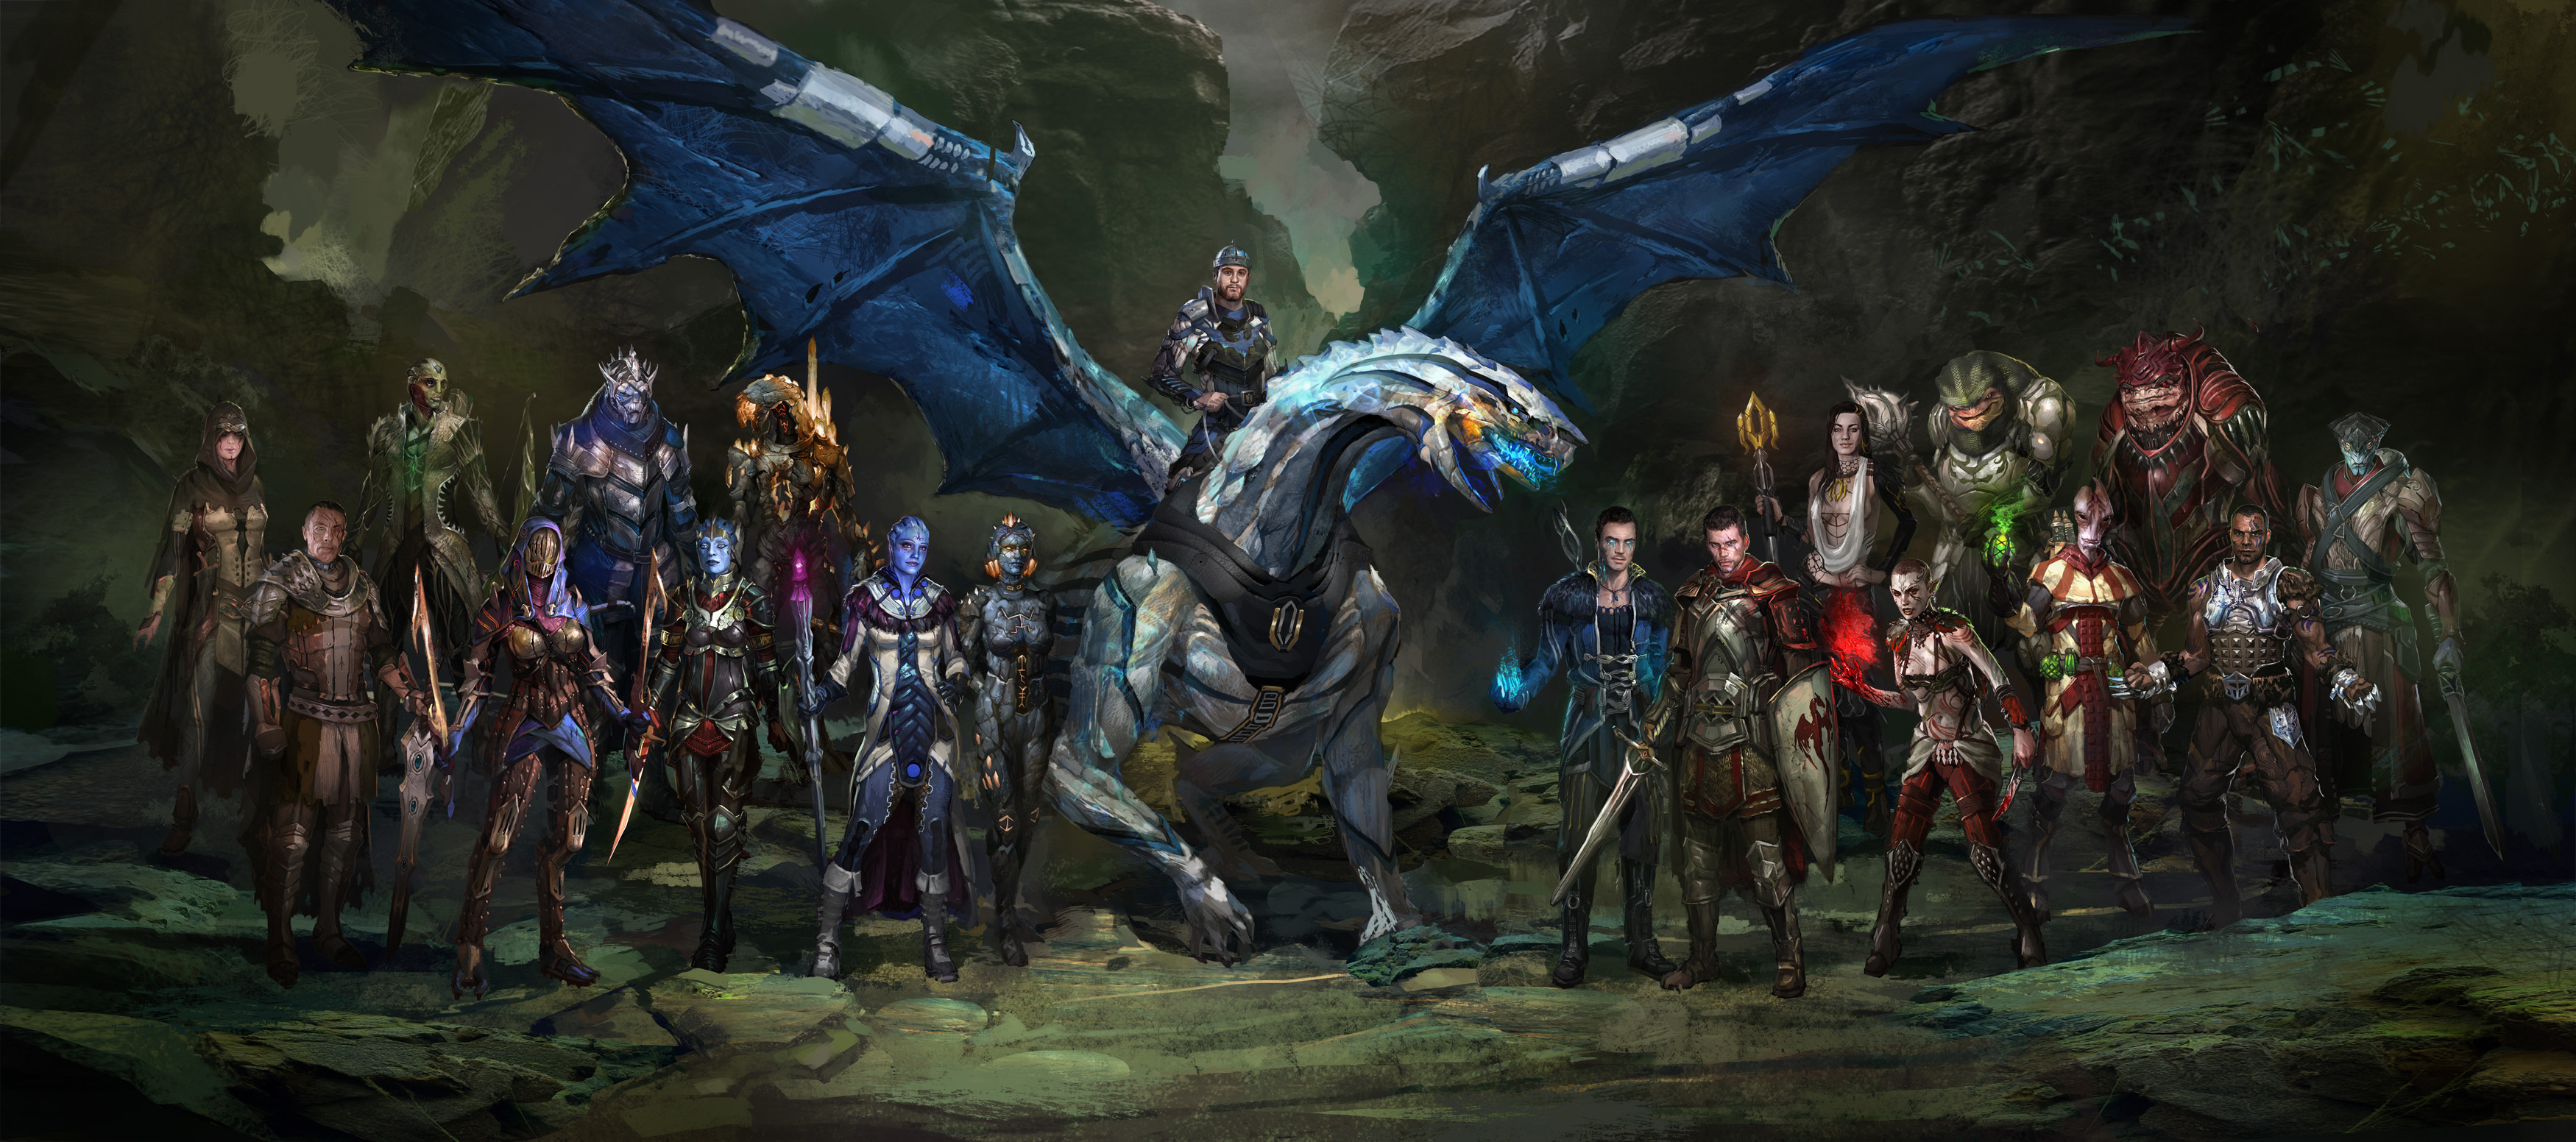 Awesome Medieval Fantasy Mass Effect Wallpaper ...